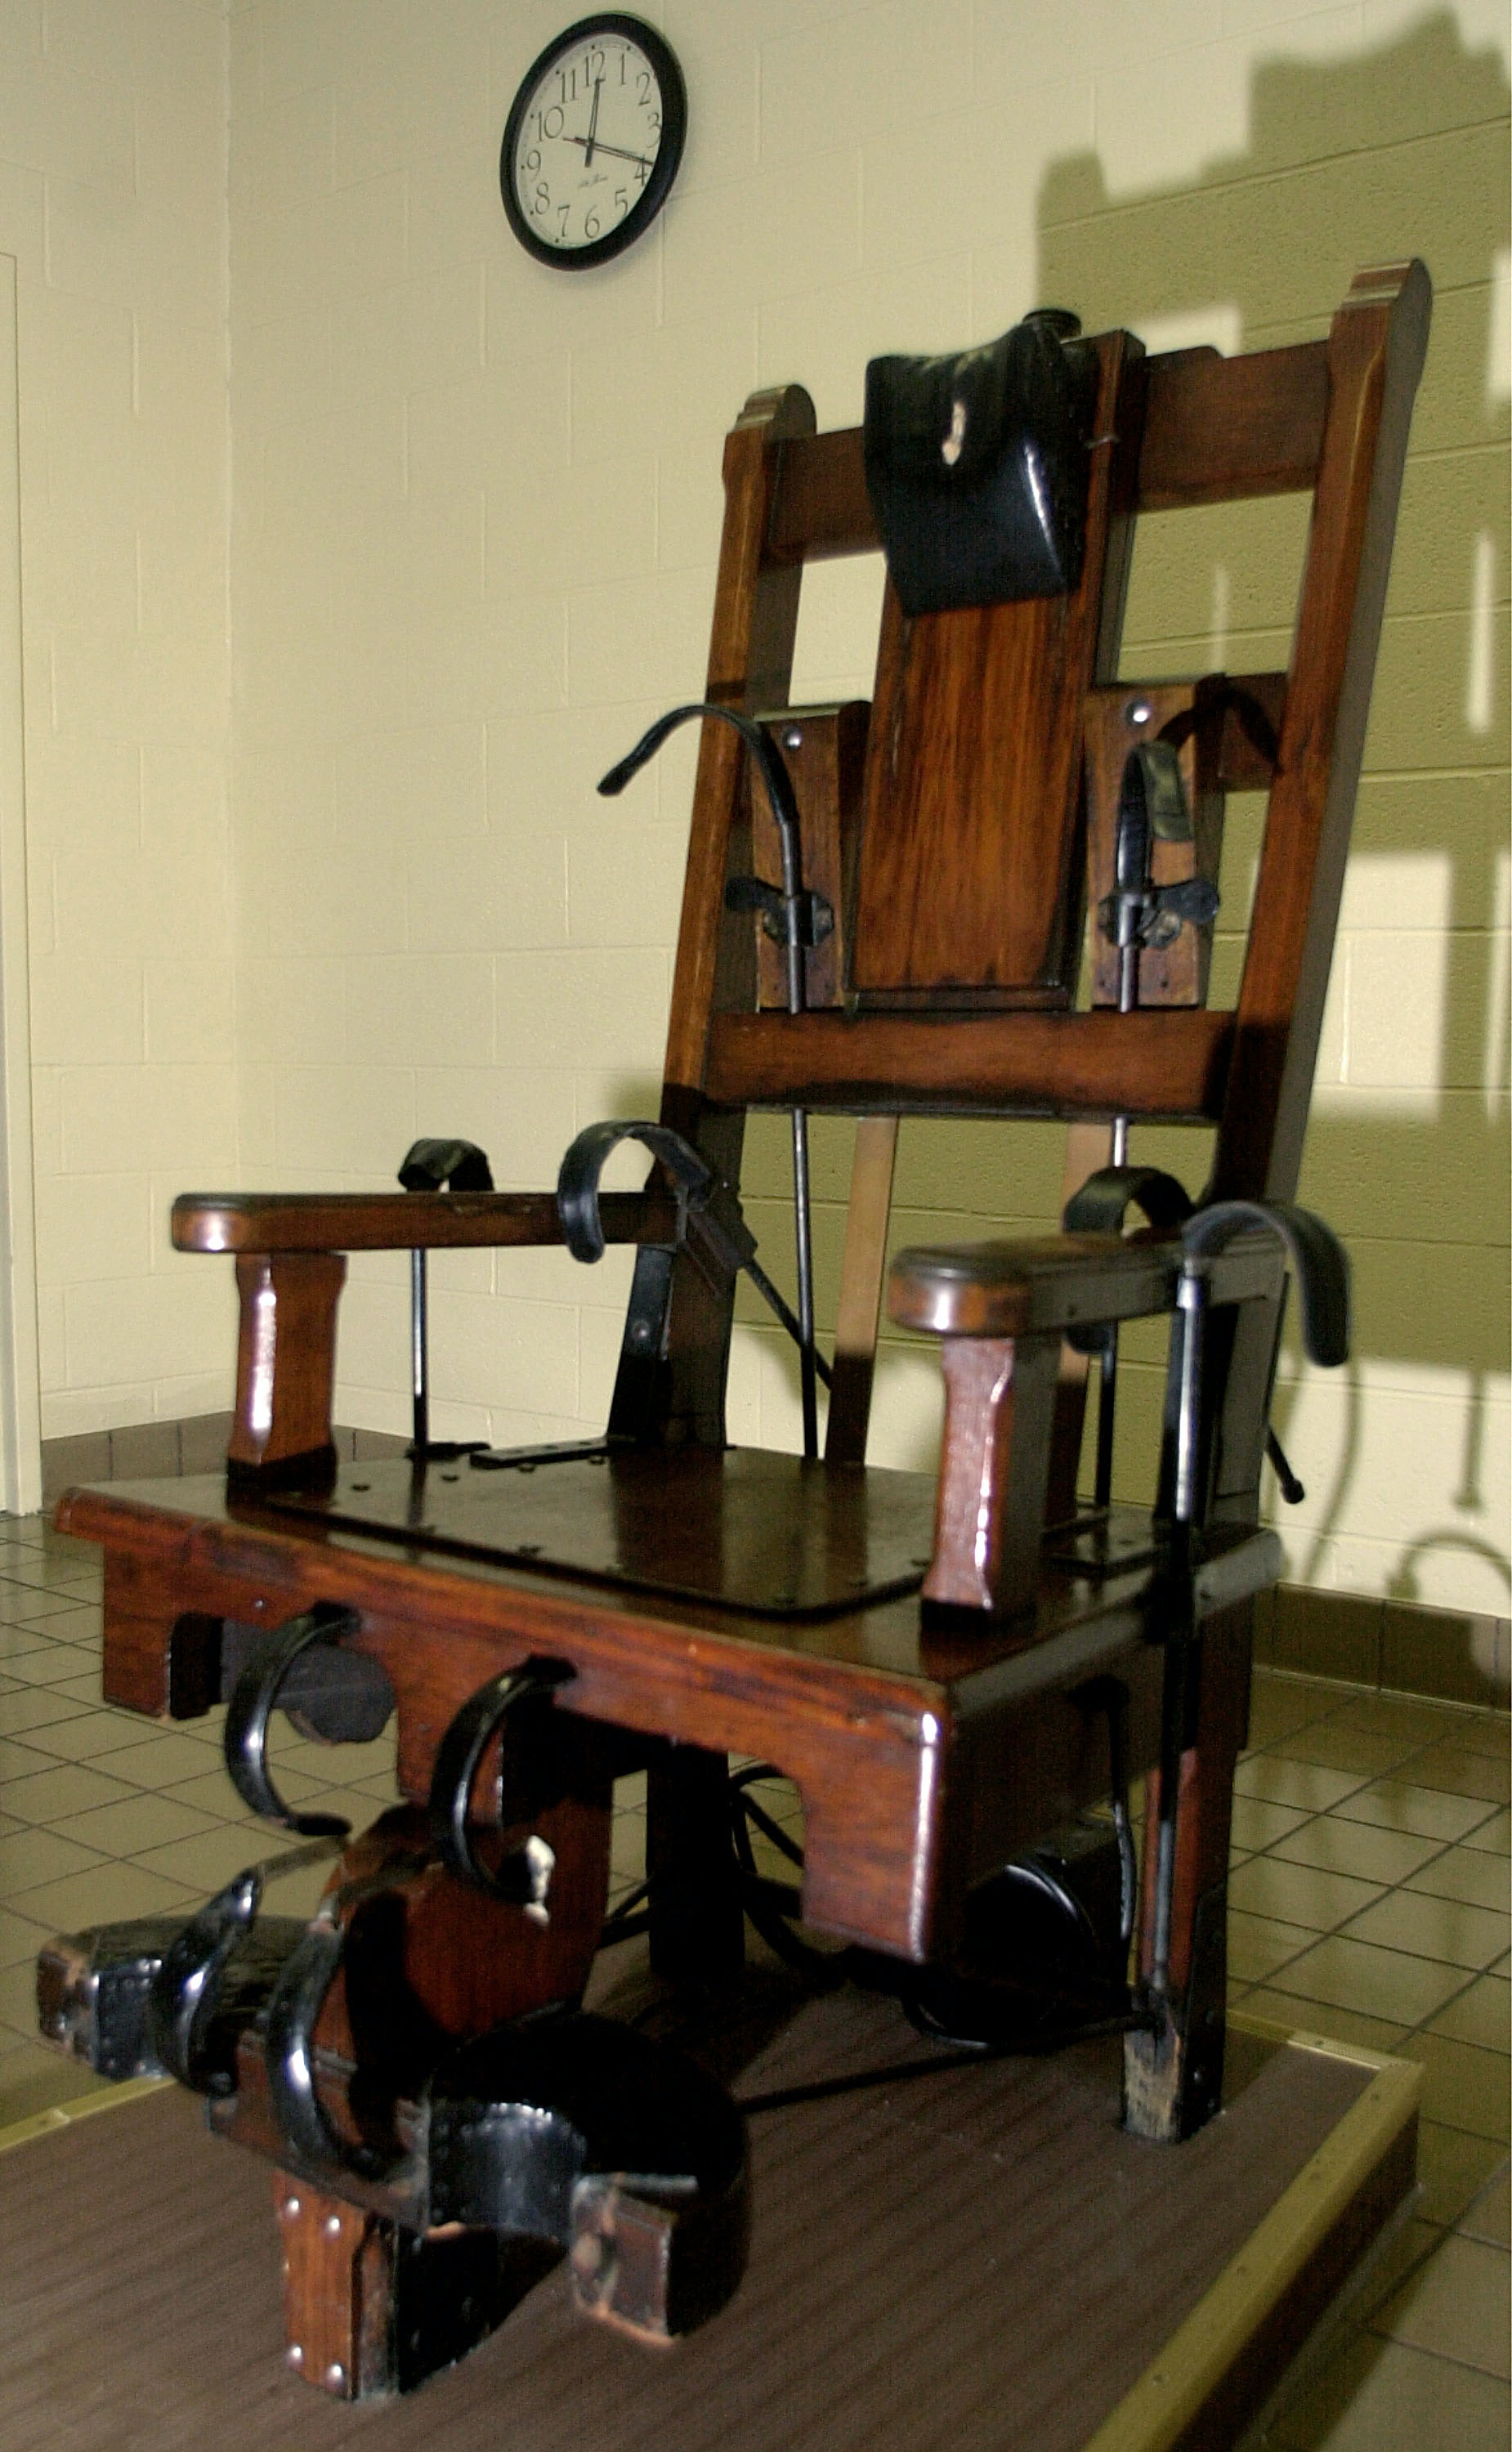 Electric chair chamber - Tennessee Brings Back Electric Chair As Long As Lethal Injection Drugs Aren T Available